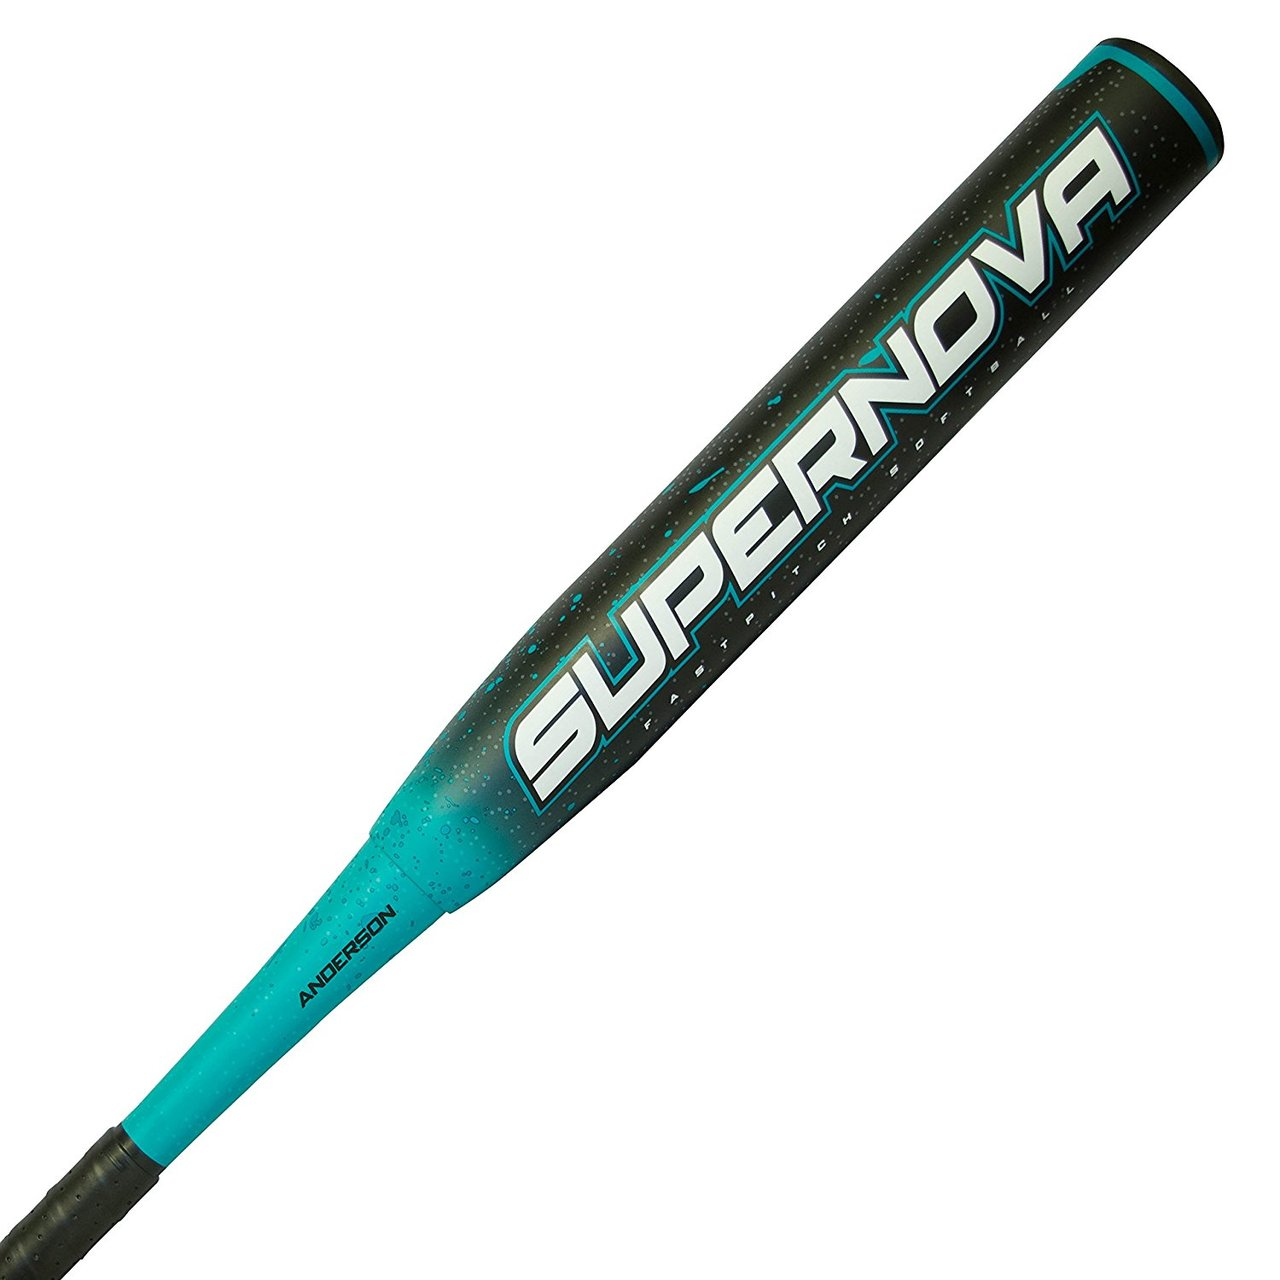 anderson-supernova-10-fast-pitch-softball-bat-32-inch-22-oz 017035-3222  874147008454 2.25 Barrel -10 Drop Weight Ultra balanced for more speed and